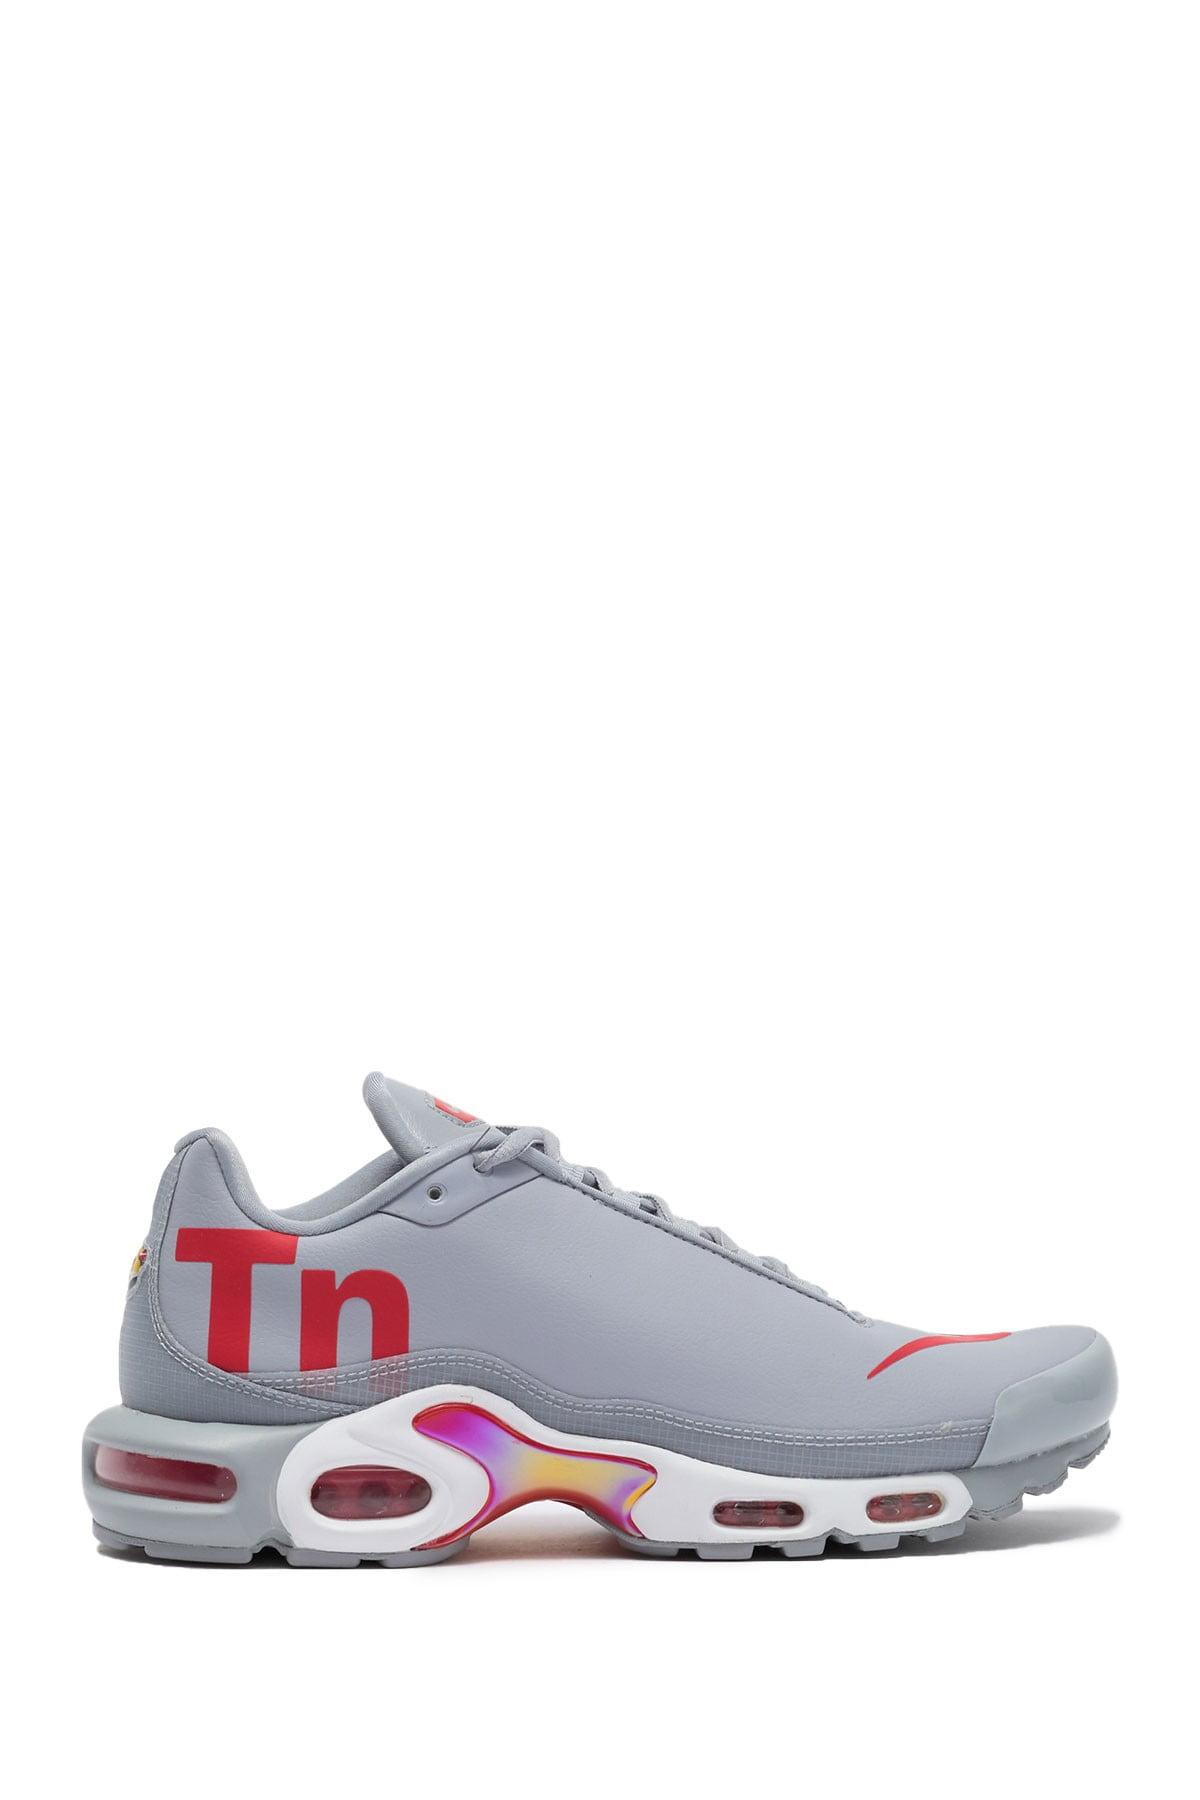 Nike Air Max Plus Tn Se Shoes - Size 13 in Gray for Men - Lyst